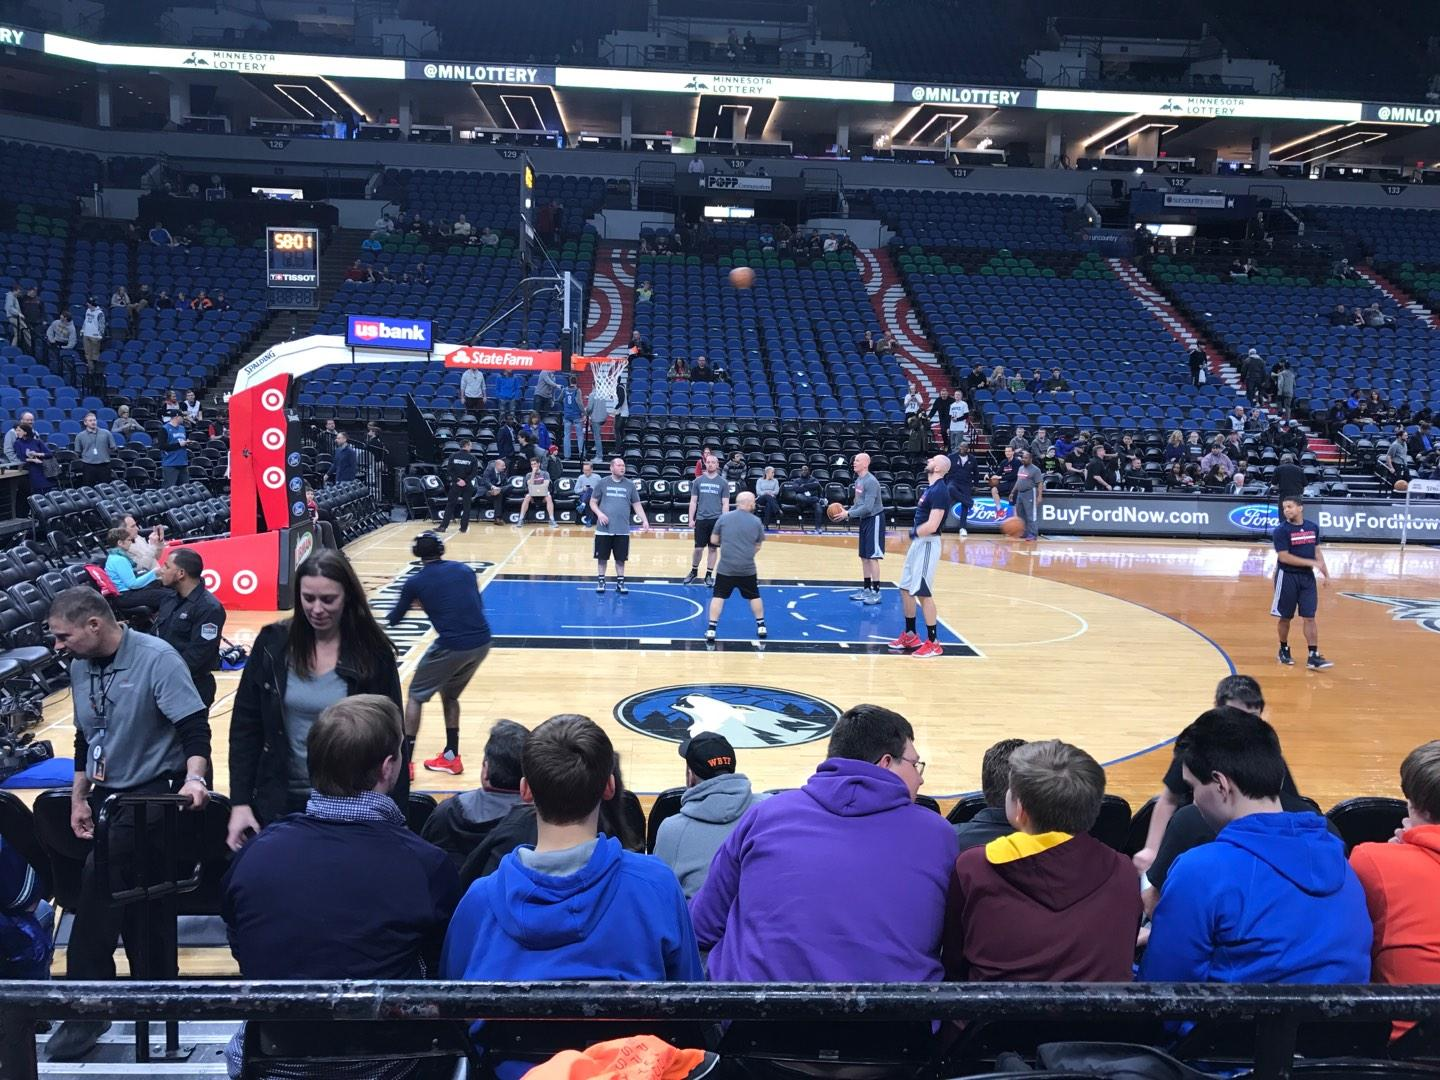 Target Center Section 112 Row B Seat 13